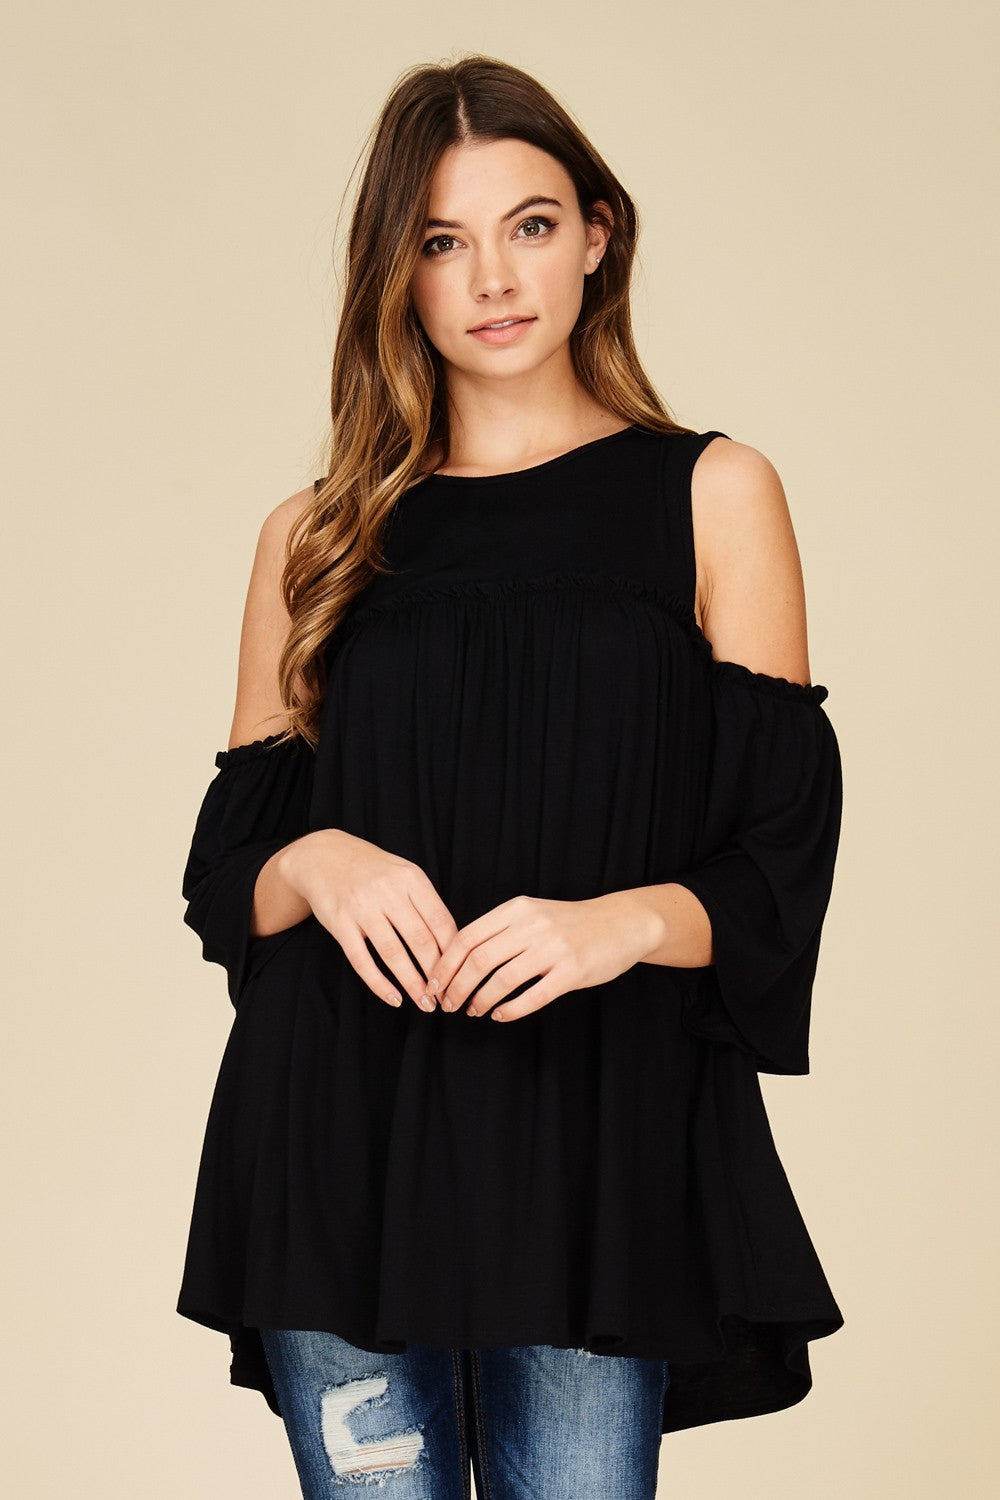 Black cold shoulder knit tunic top with three quarter bell sleeves